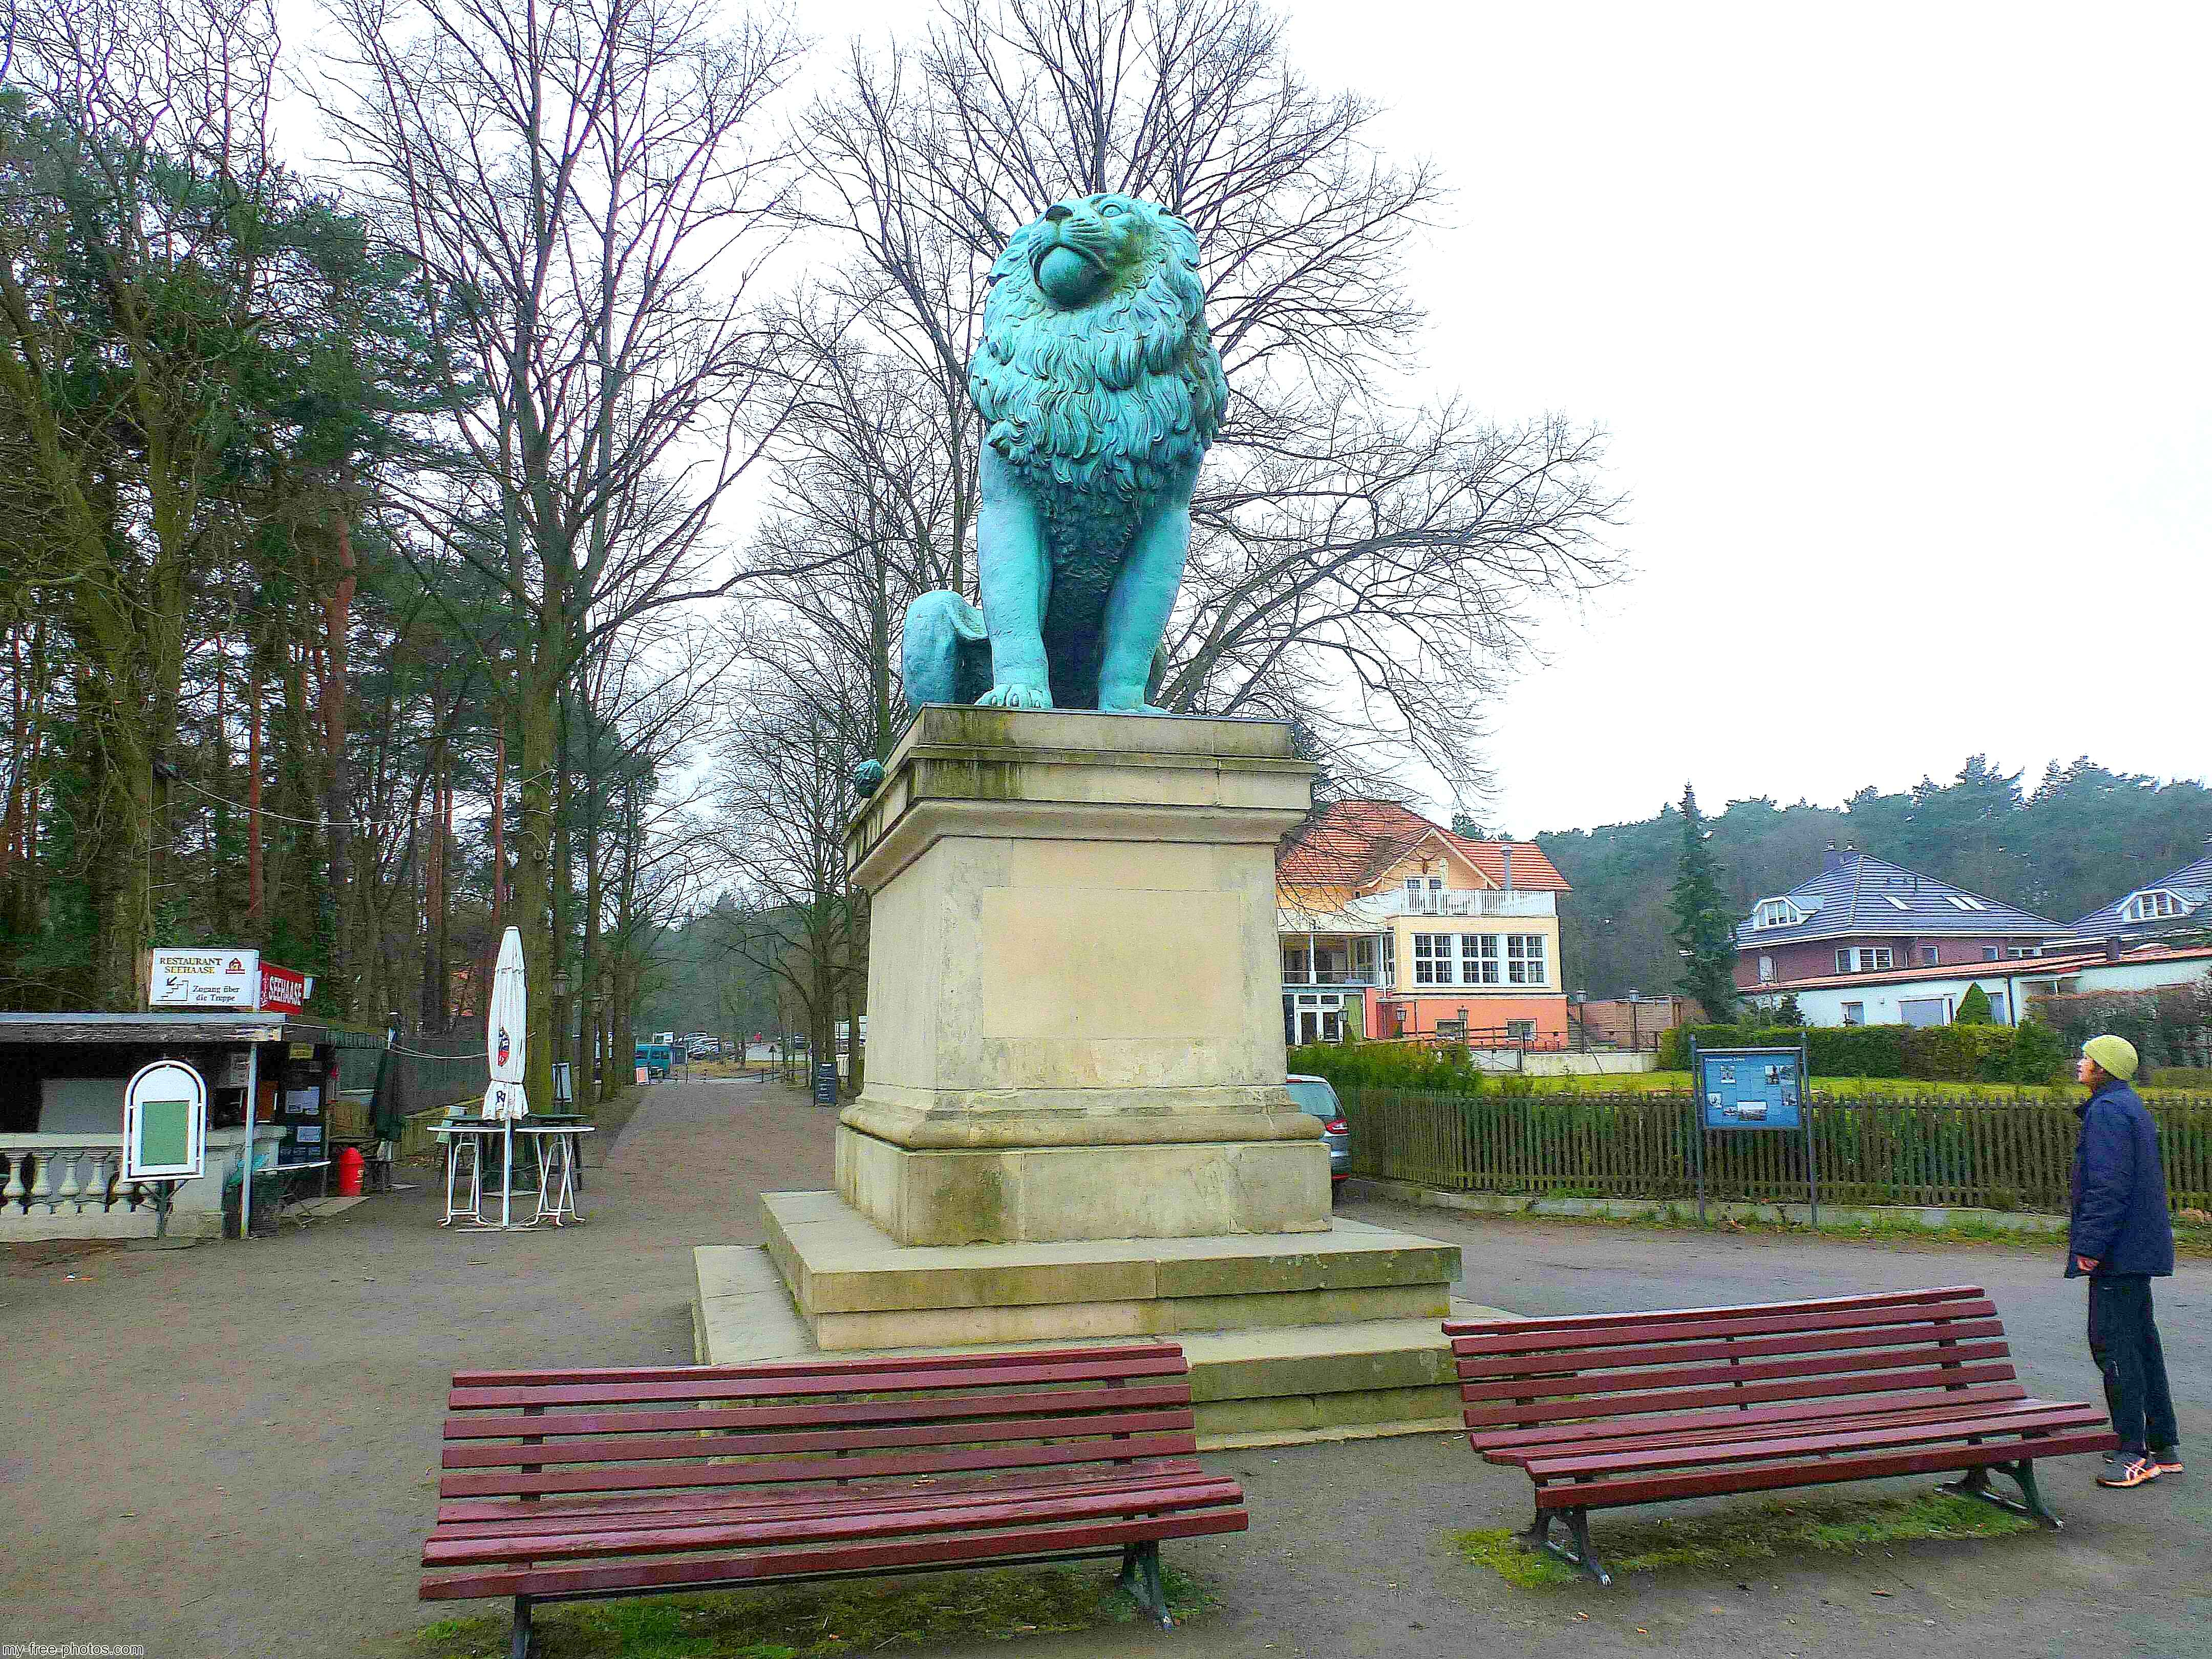 Isted lion, Wannsee